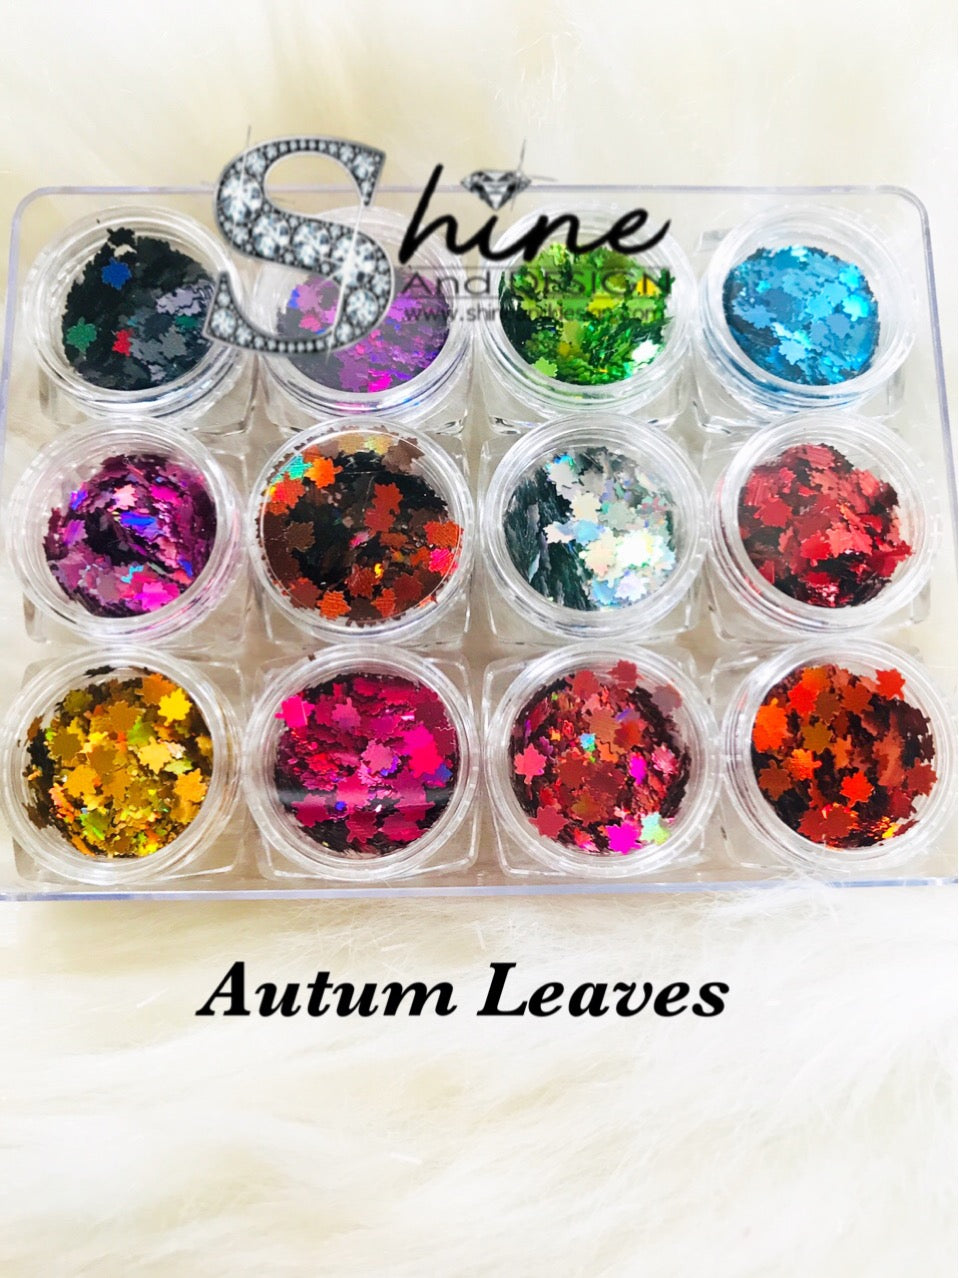 SHINE-Autumn Leaves Mix - 12 Colors Set